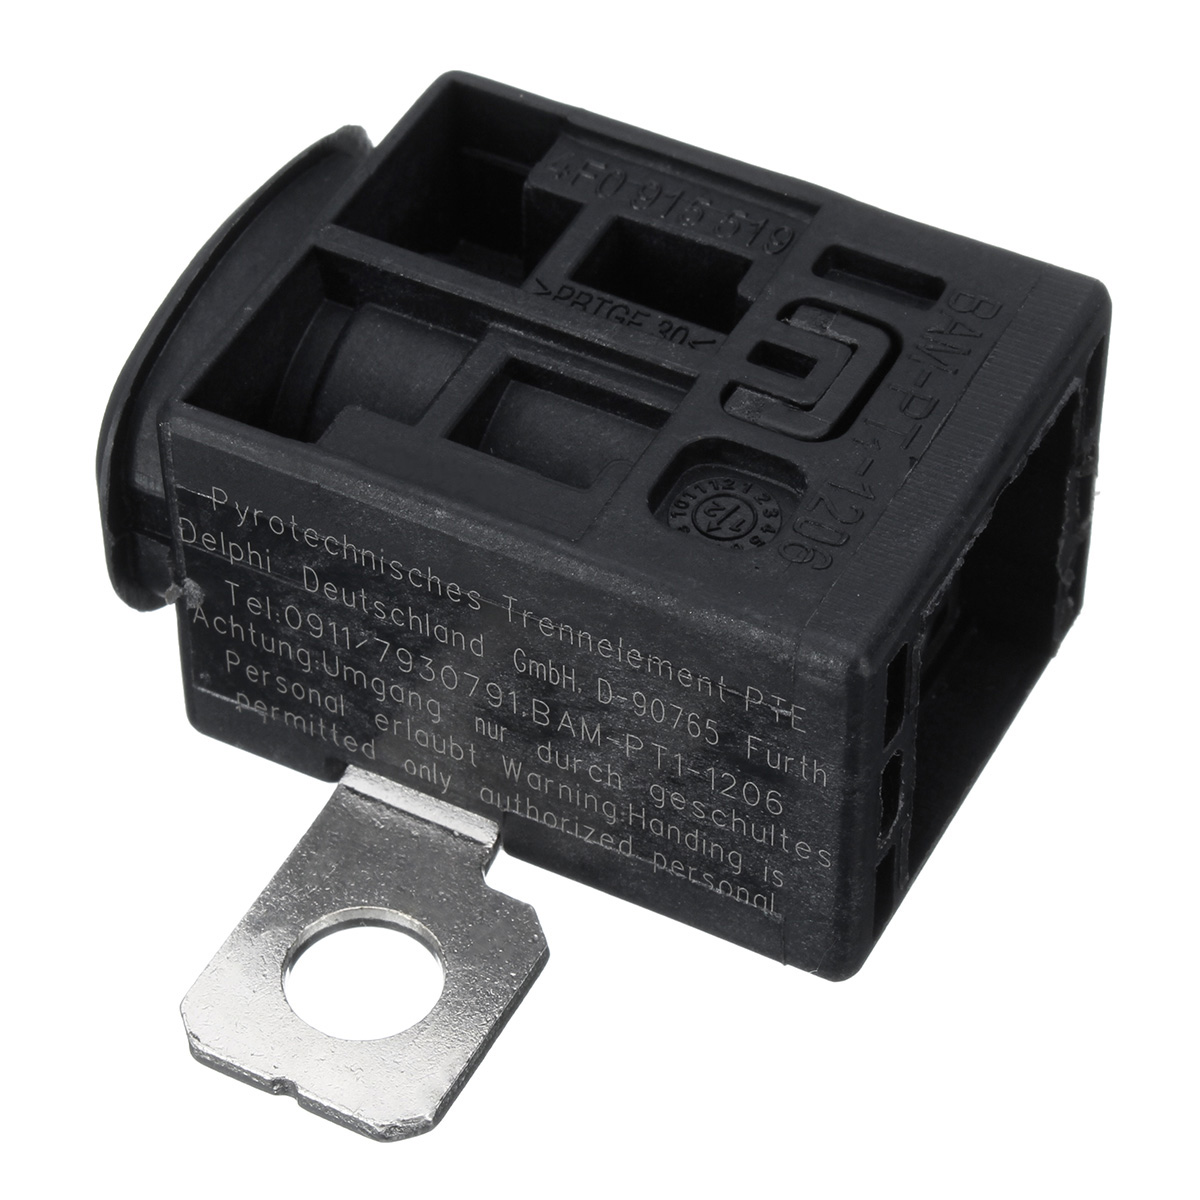 medium resolution of 4f0915519 battery fuse box cut off overload protection trip for audi q5 a5 a7 a6 vw skoda in fuses from automobiles motorcycles on aliexpress com